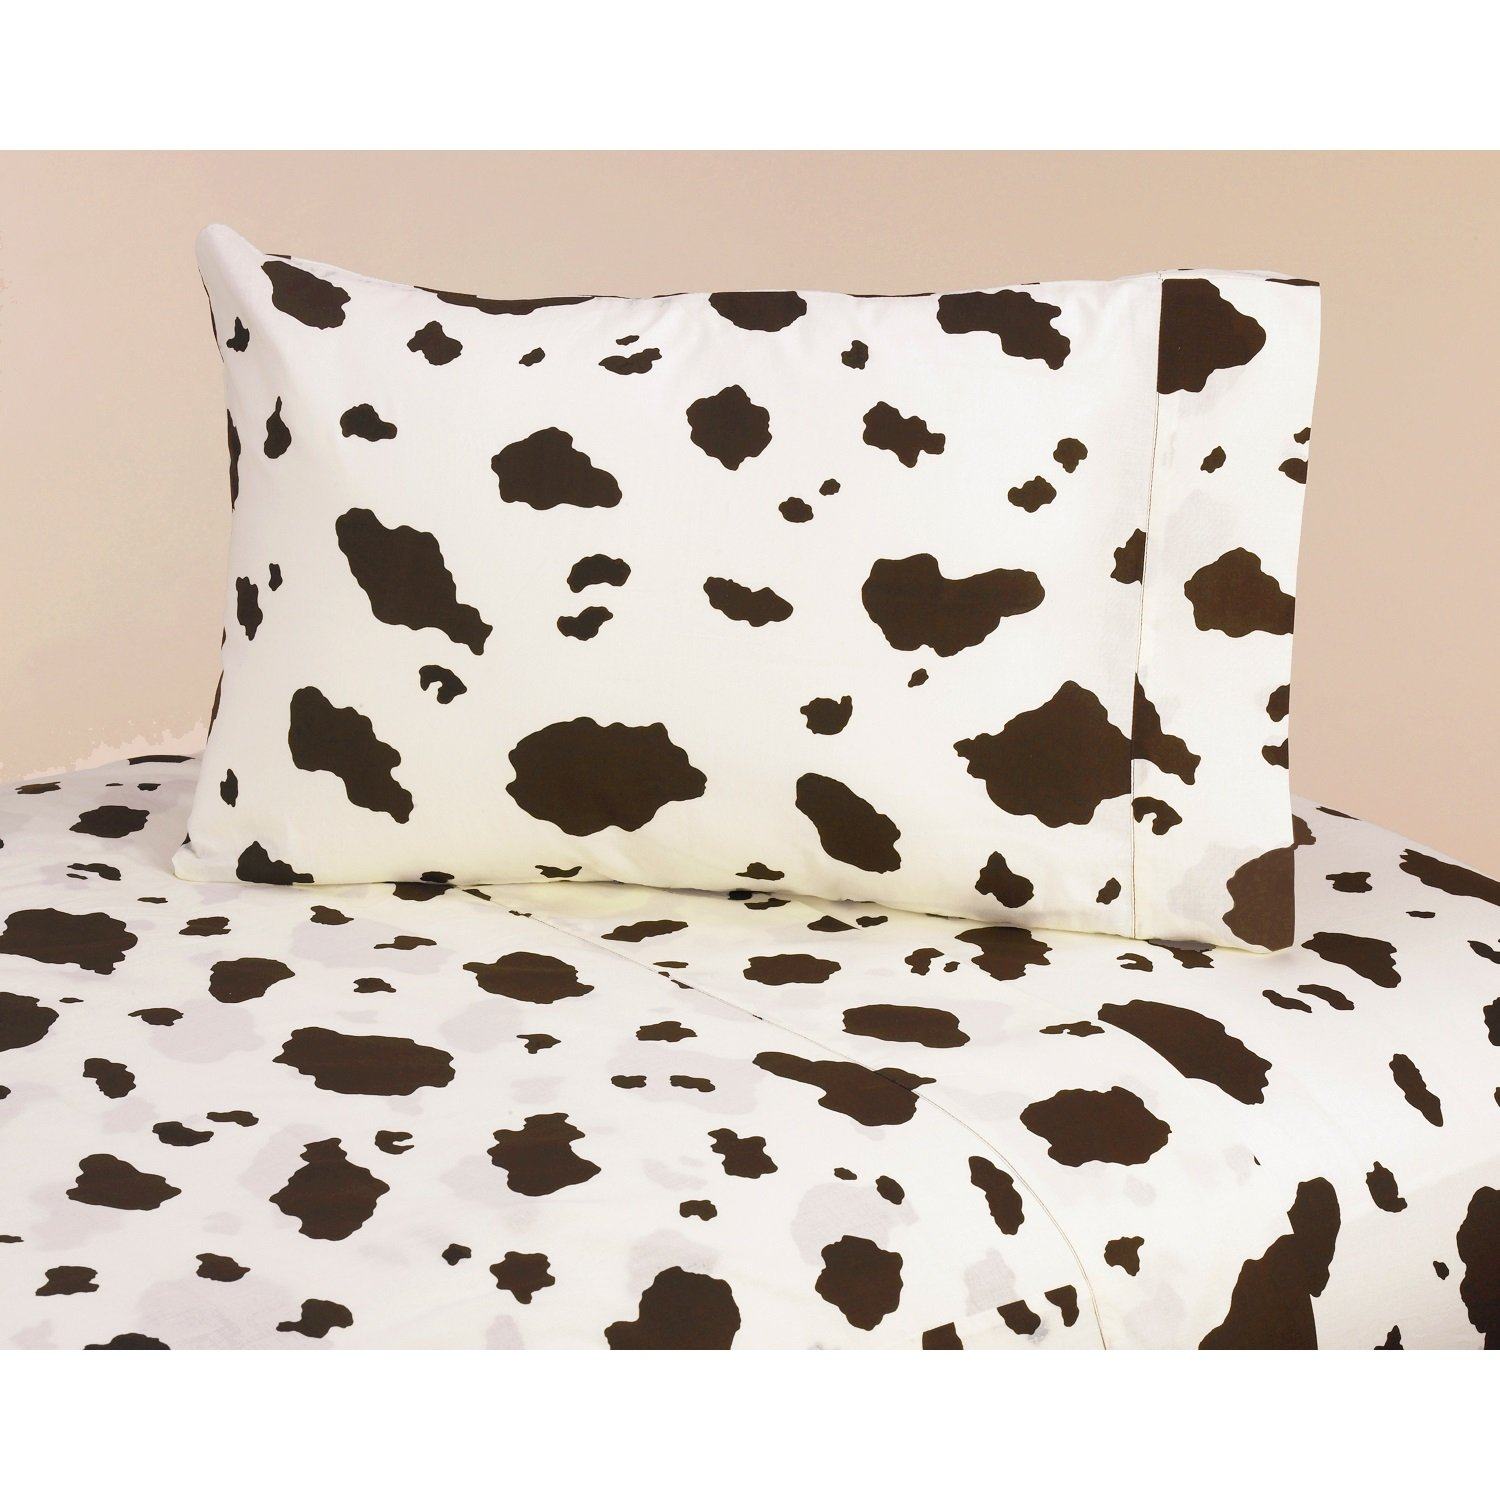 3 Piece Wild Western Printed Cow Patterned Sheet Set Twin Size, Featuring Abstract Rustic Animal Cows Print Bedding, Bold Vintage Earthy Design, Exotic Fine West County Style Bedroom, Brown, Cream